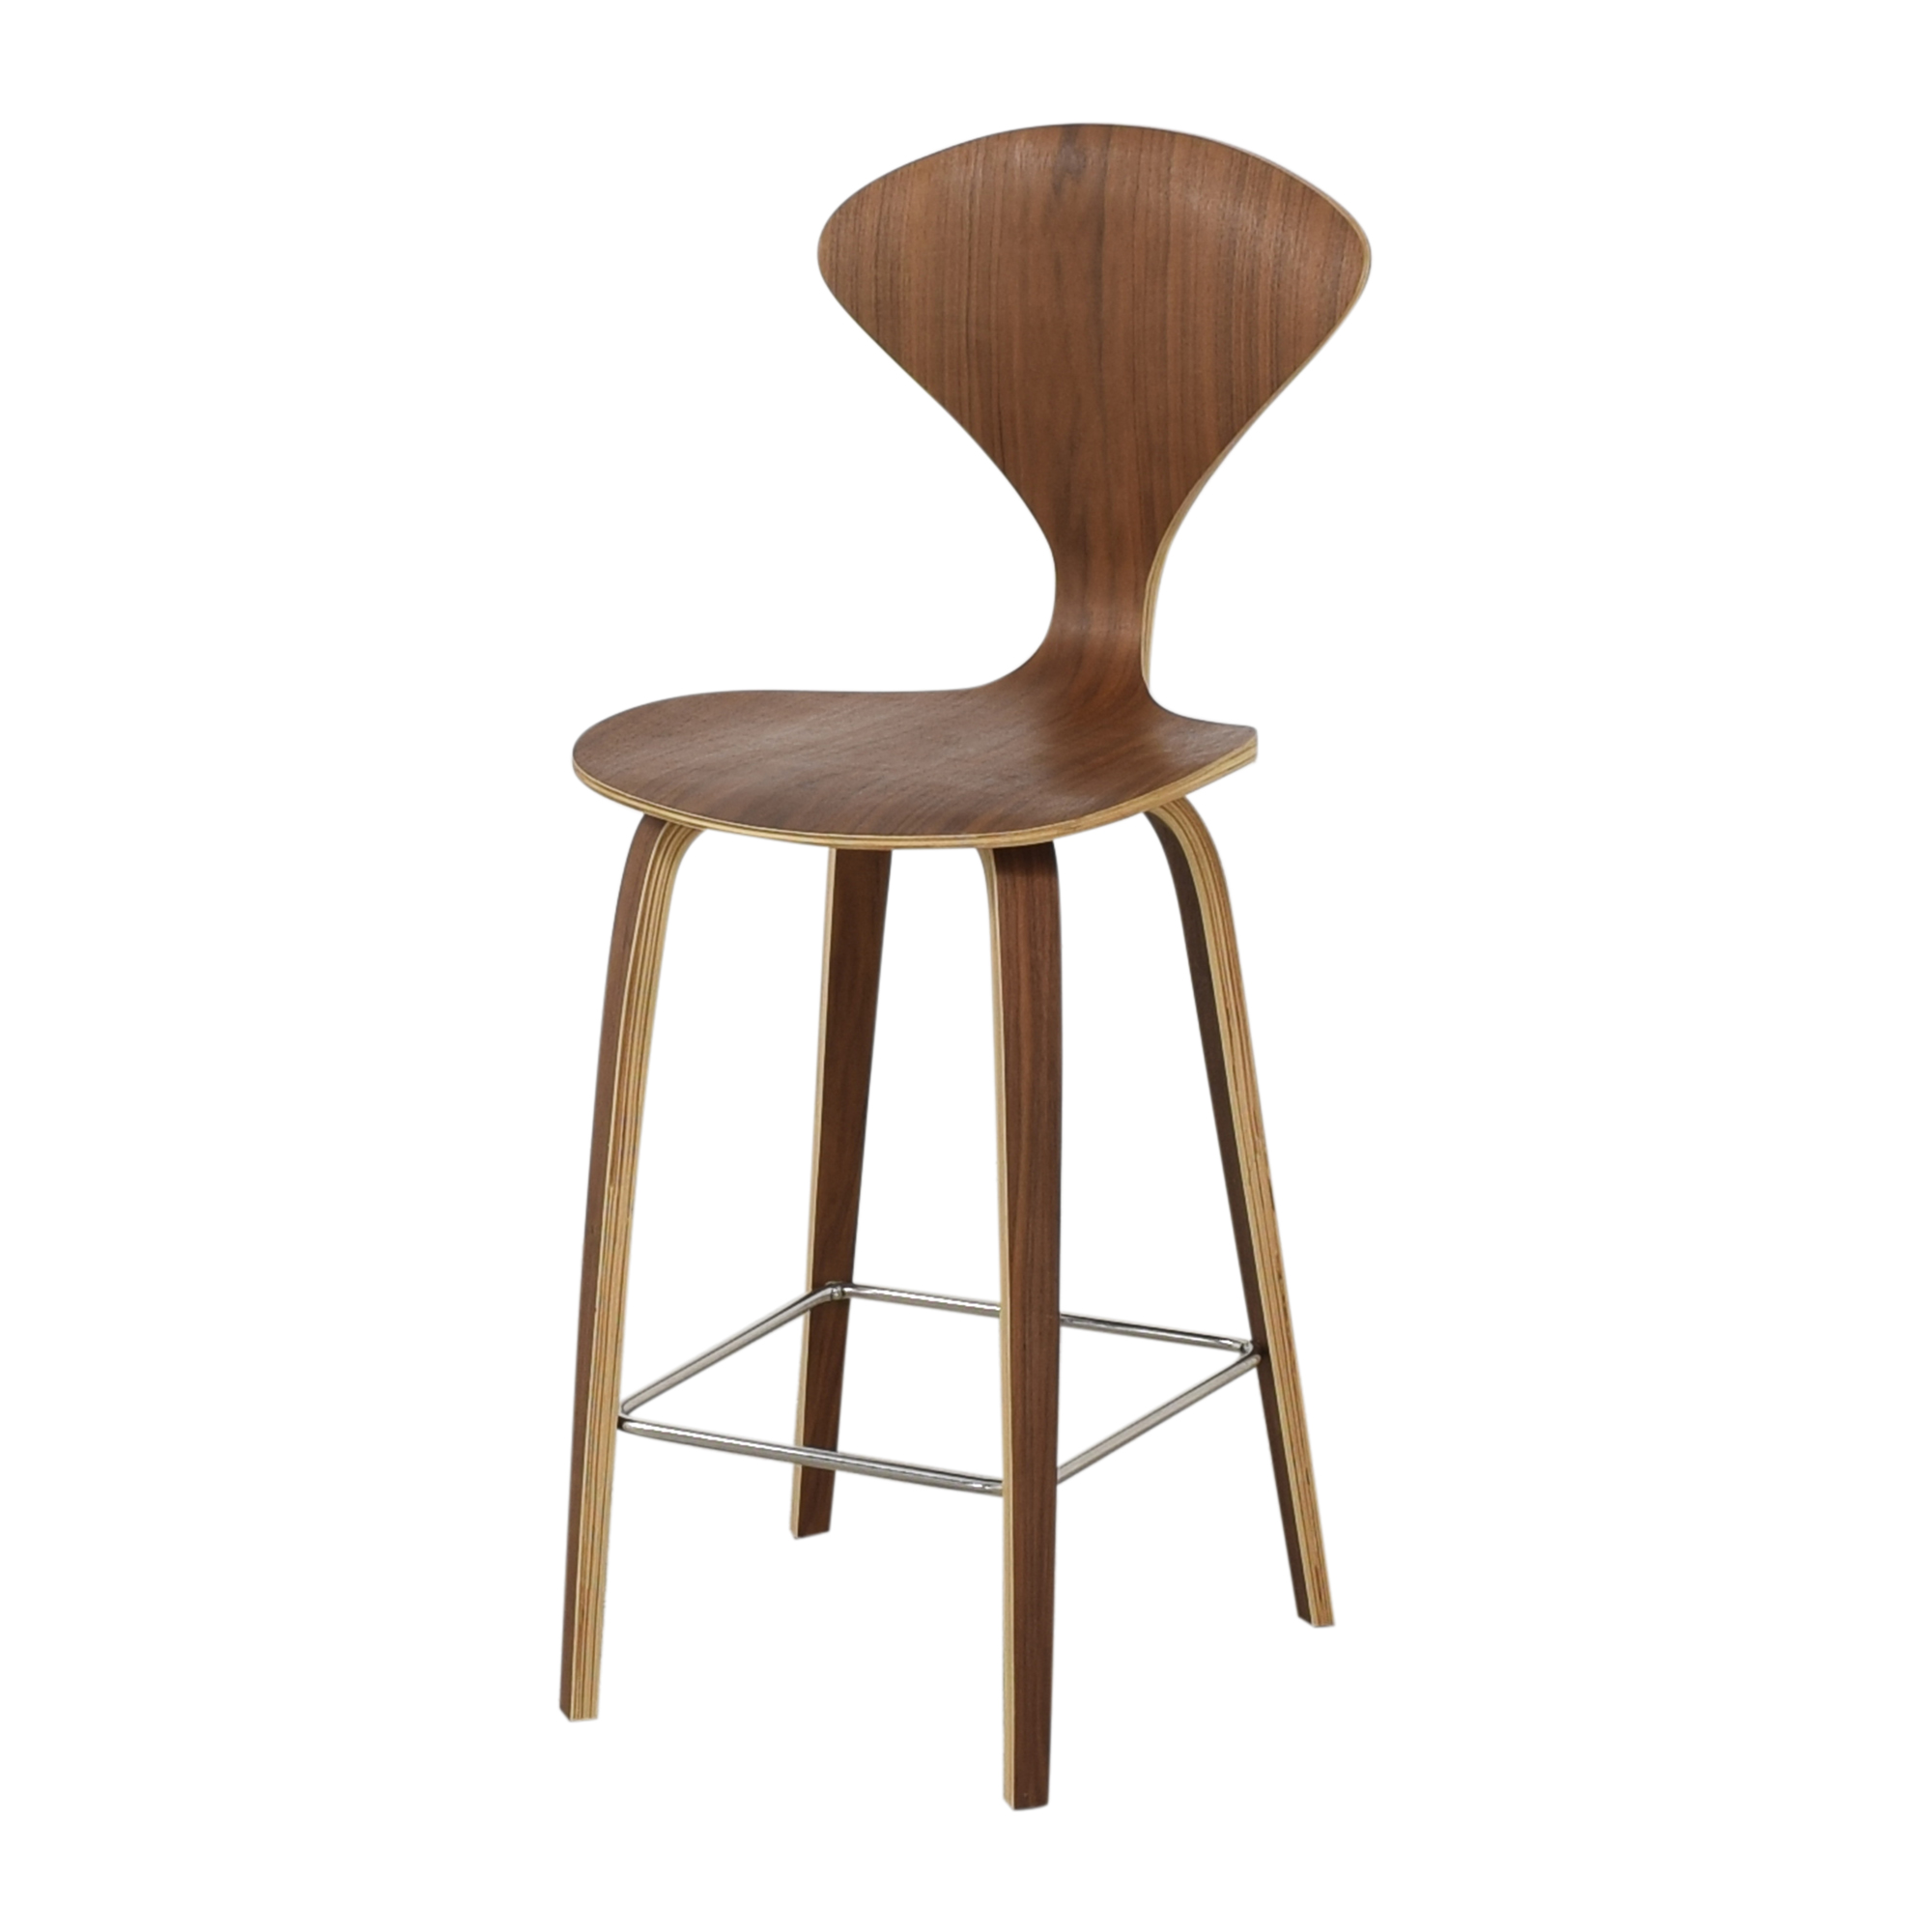 Rove Concepts Rove Concepts Norman Counter Stools Chairs